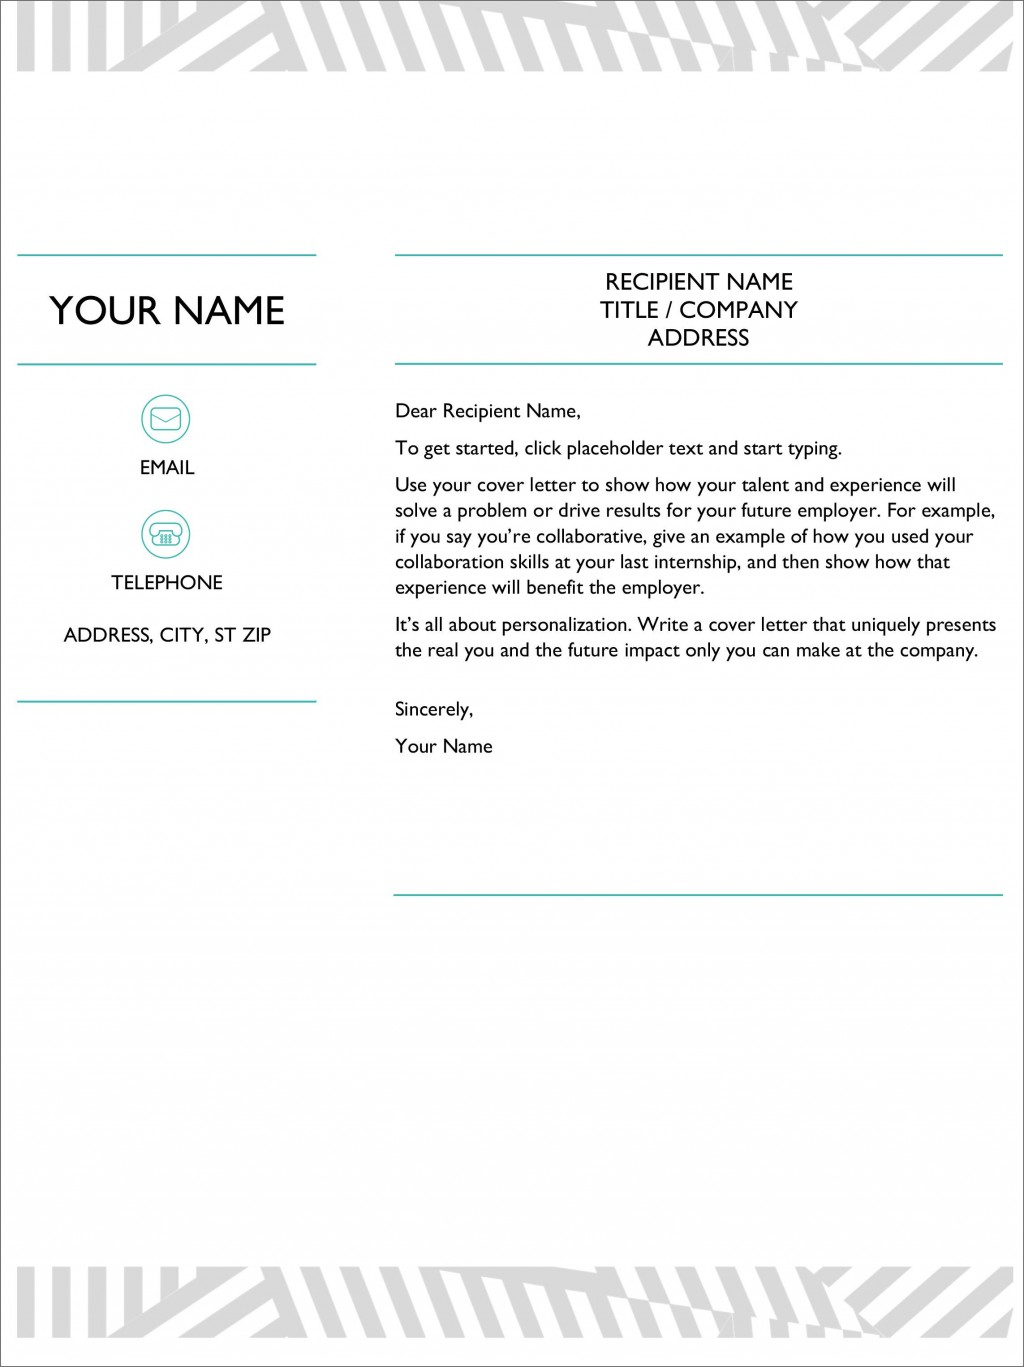 006 Unusual Cover Letter Template Microsoft Word Highest Clarity  2007 FaxLarge